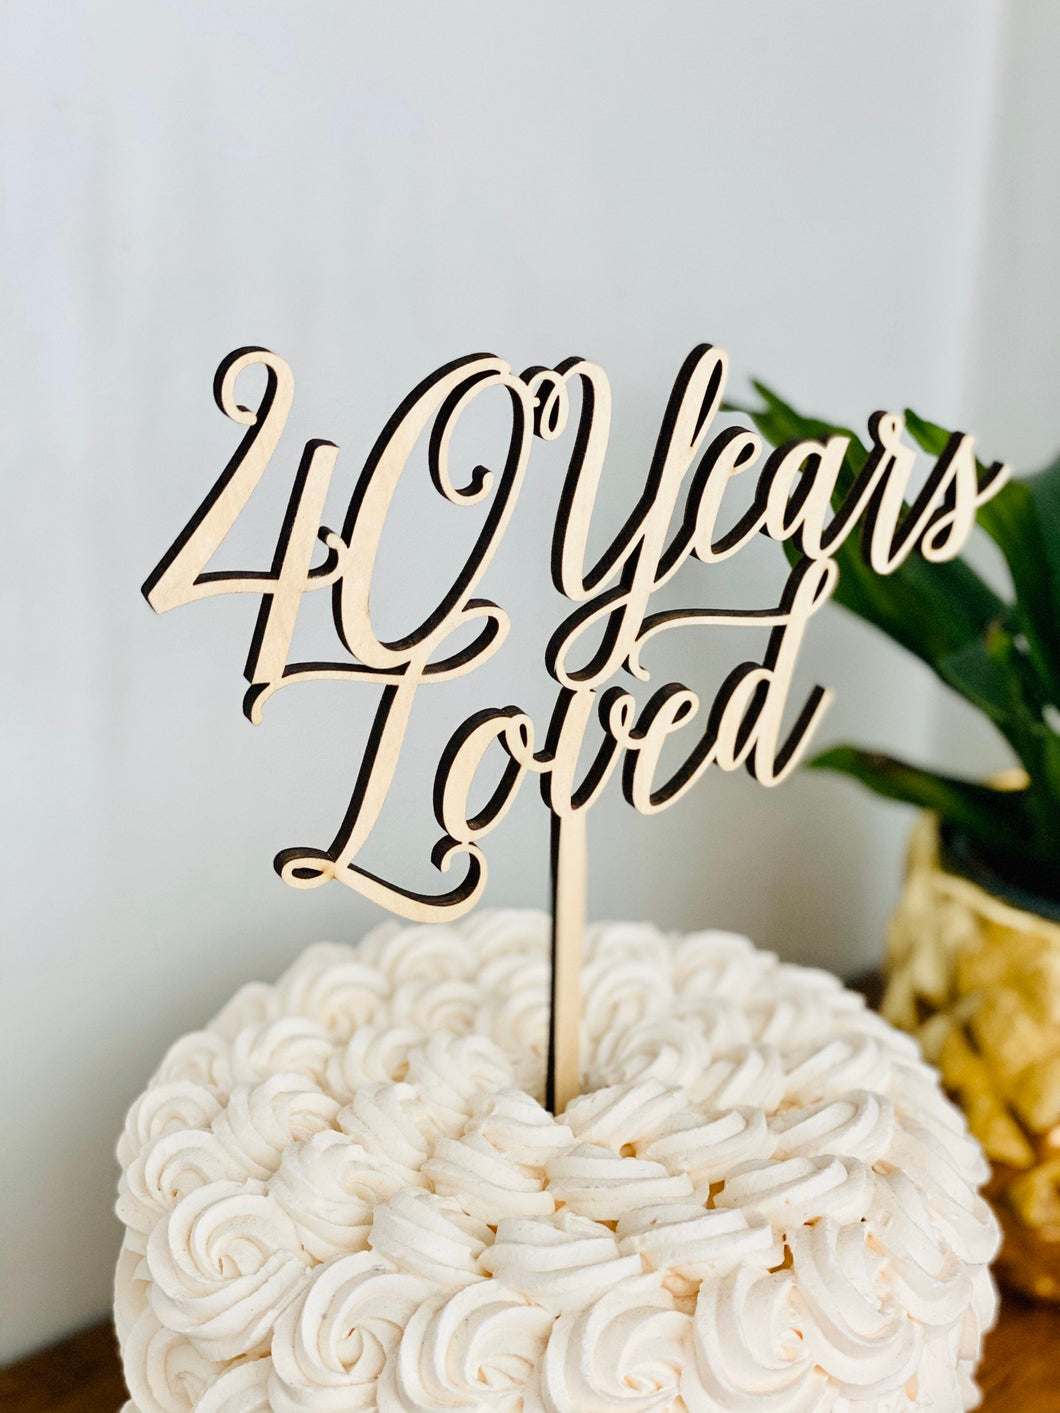 40 Years Loved Cake Topper, 7